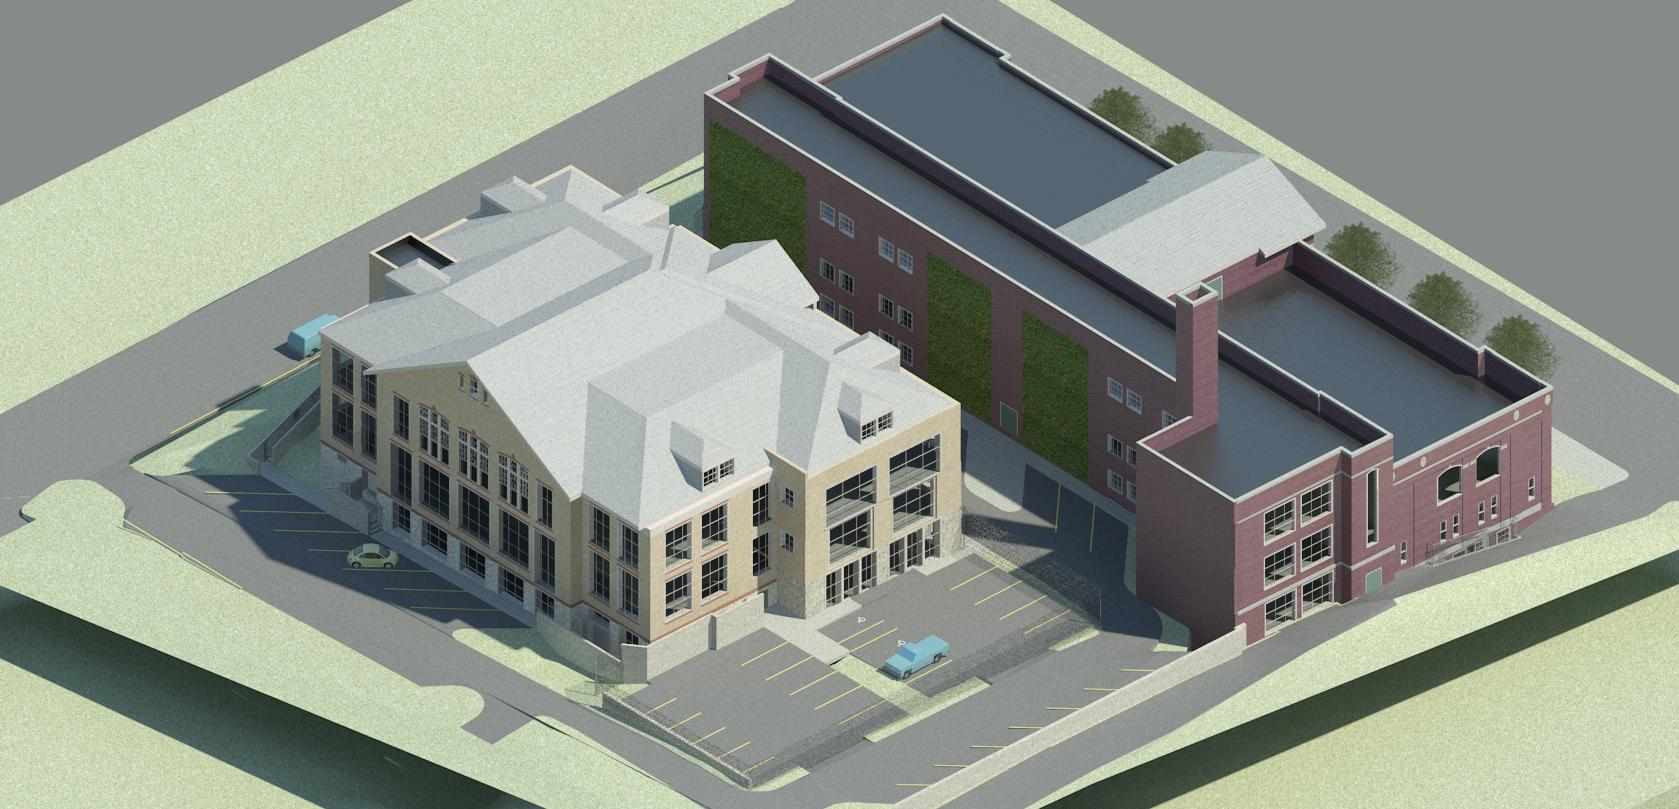 Updates for Old Chambersburg Central Development: Our First Newsletter